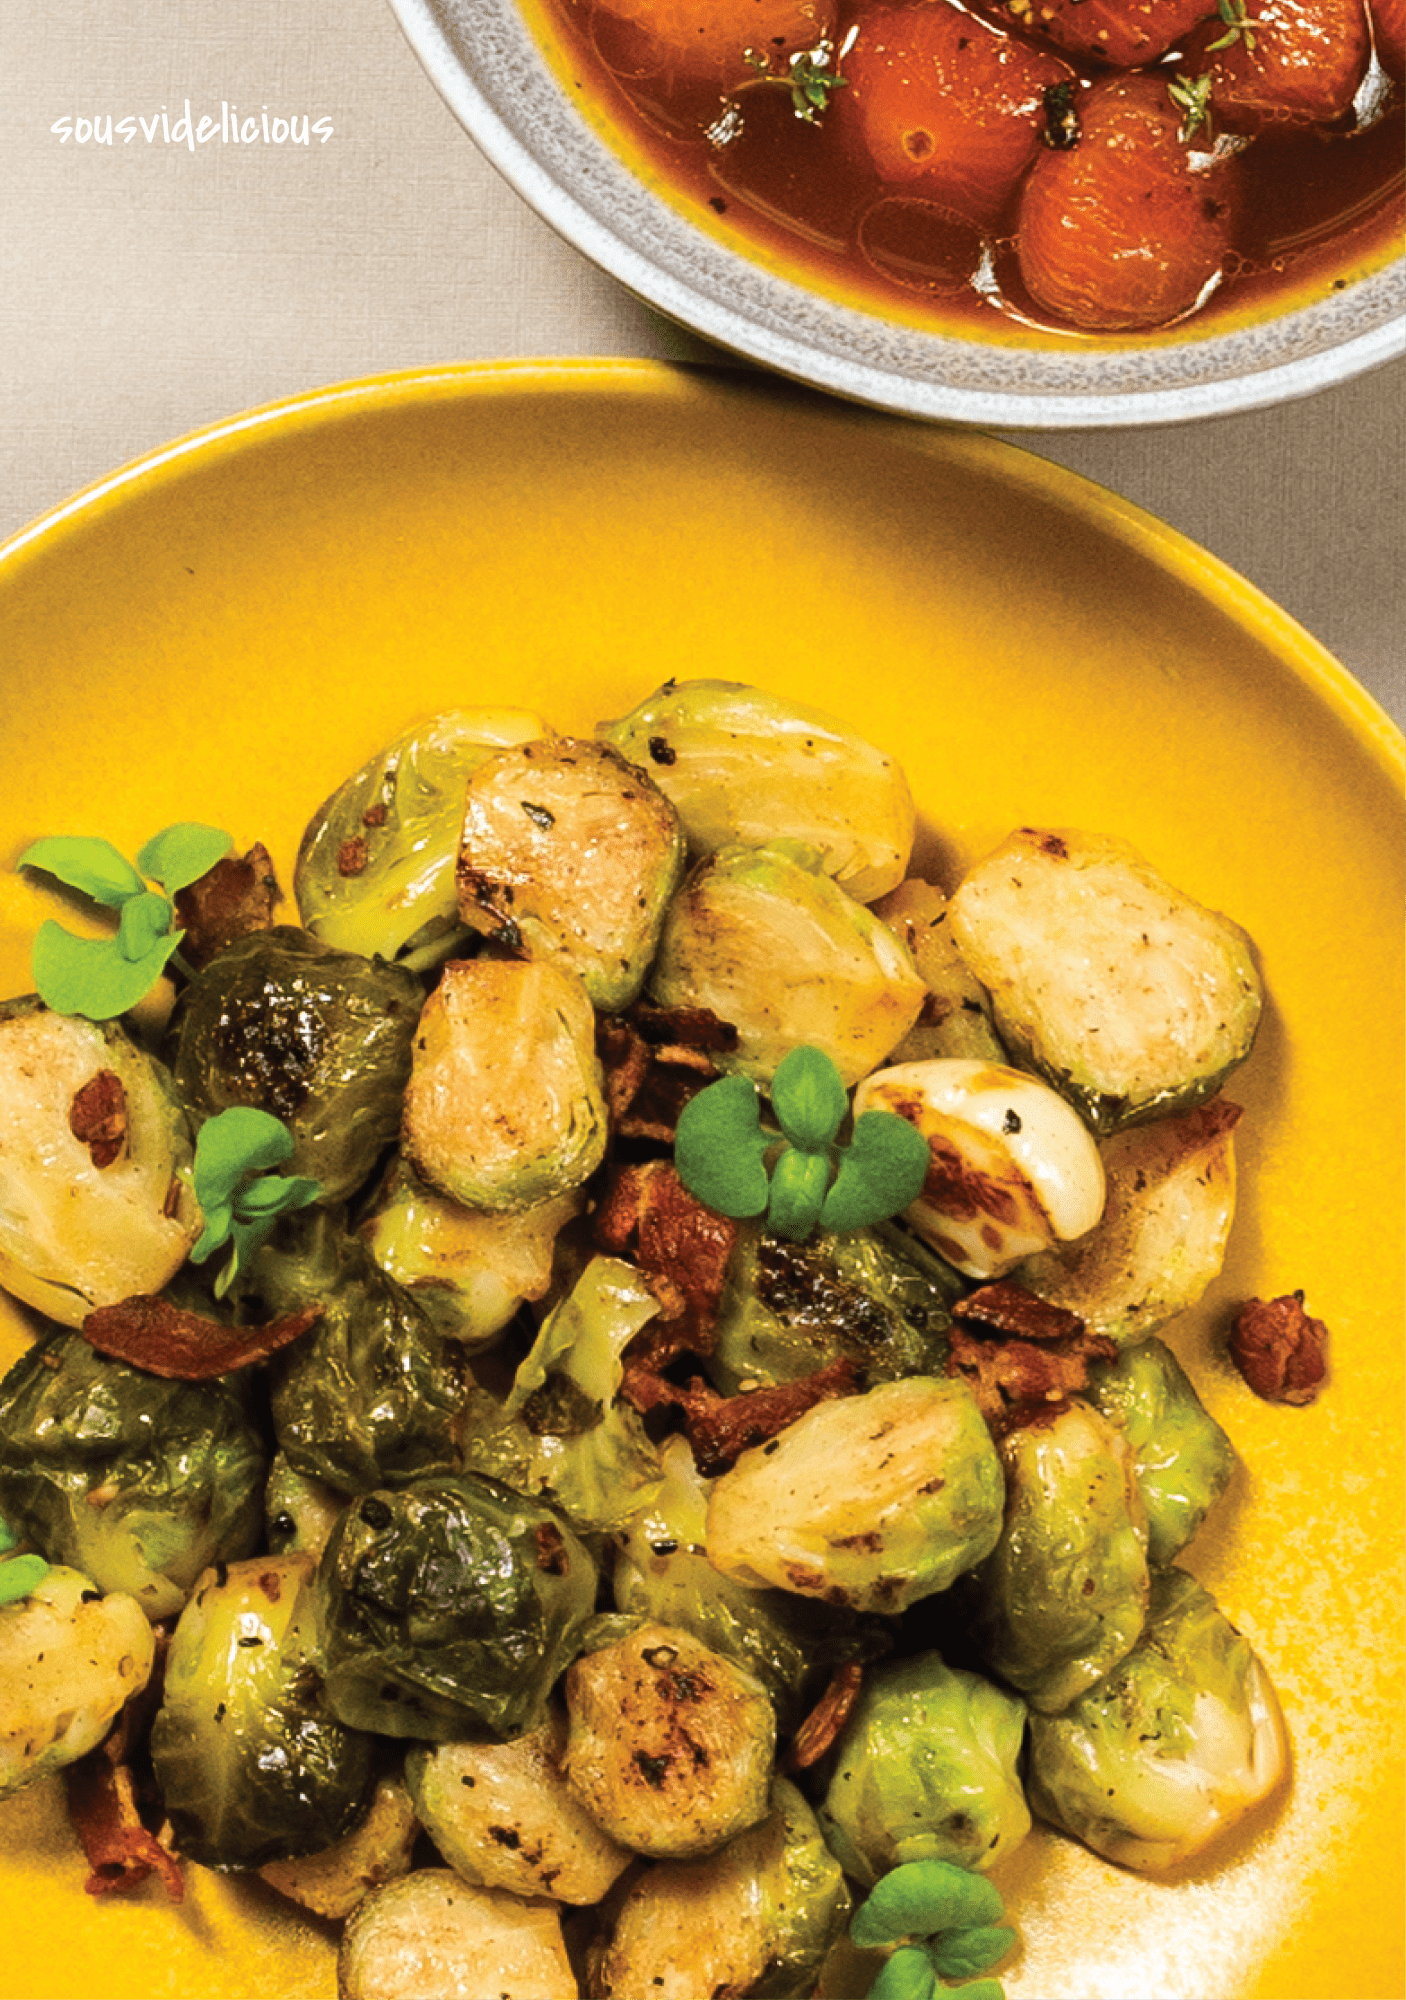 Sous vide Brussel Sprouts by Sousvidelicious